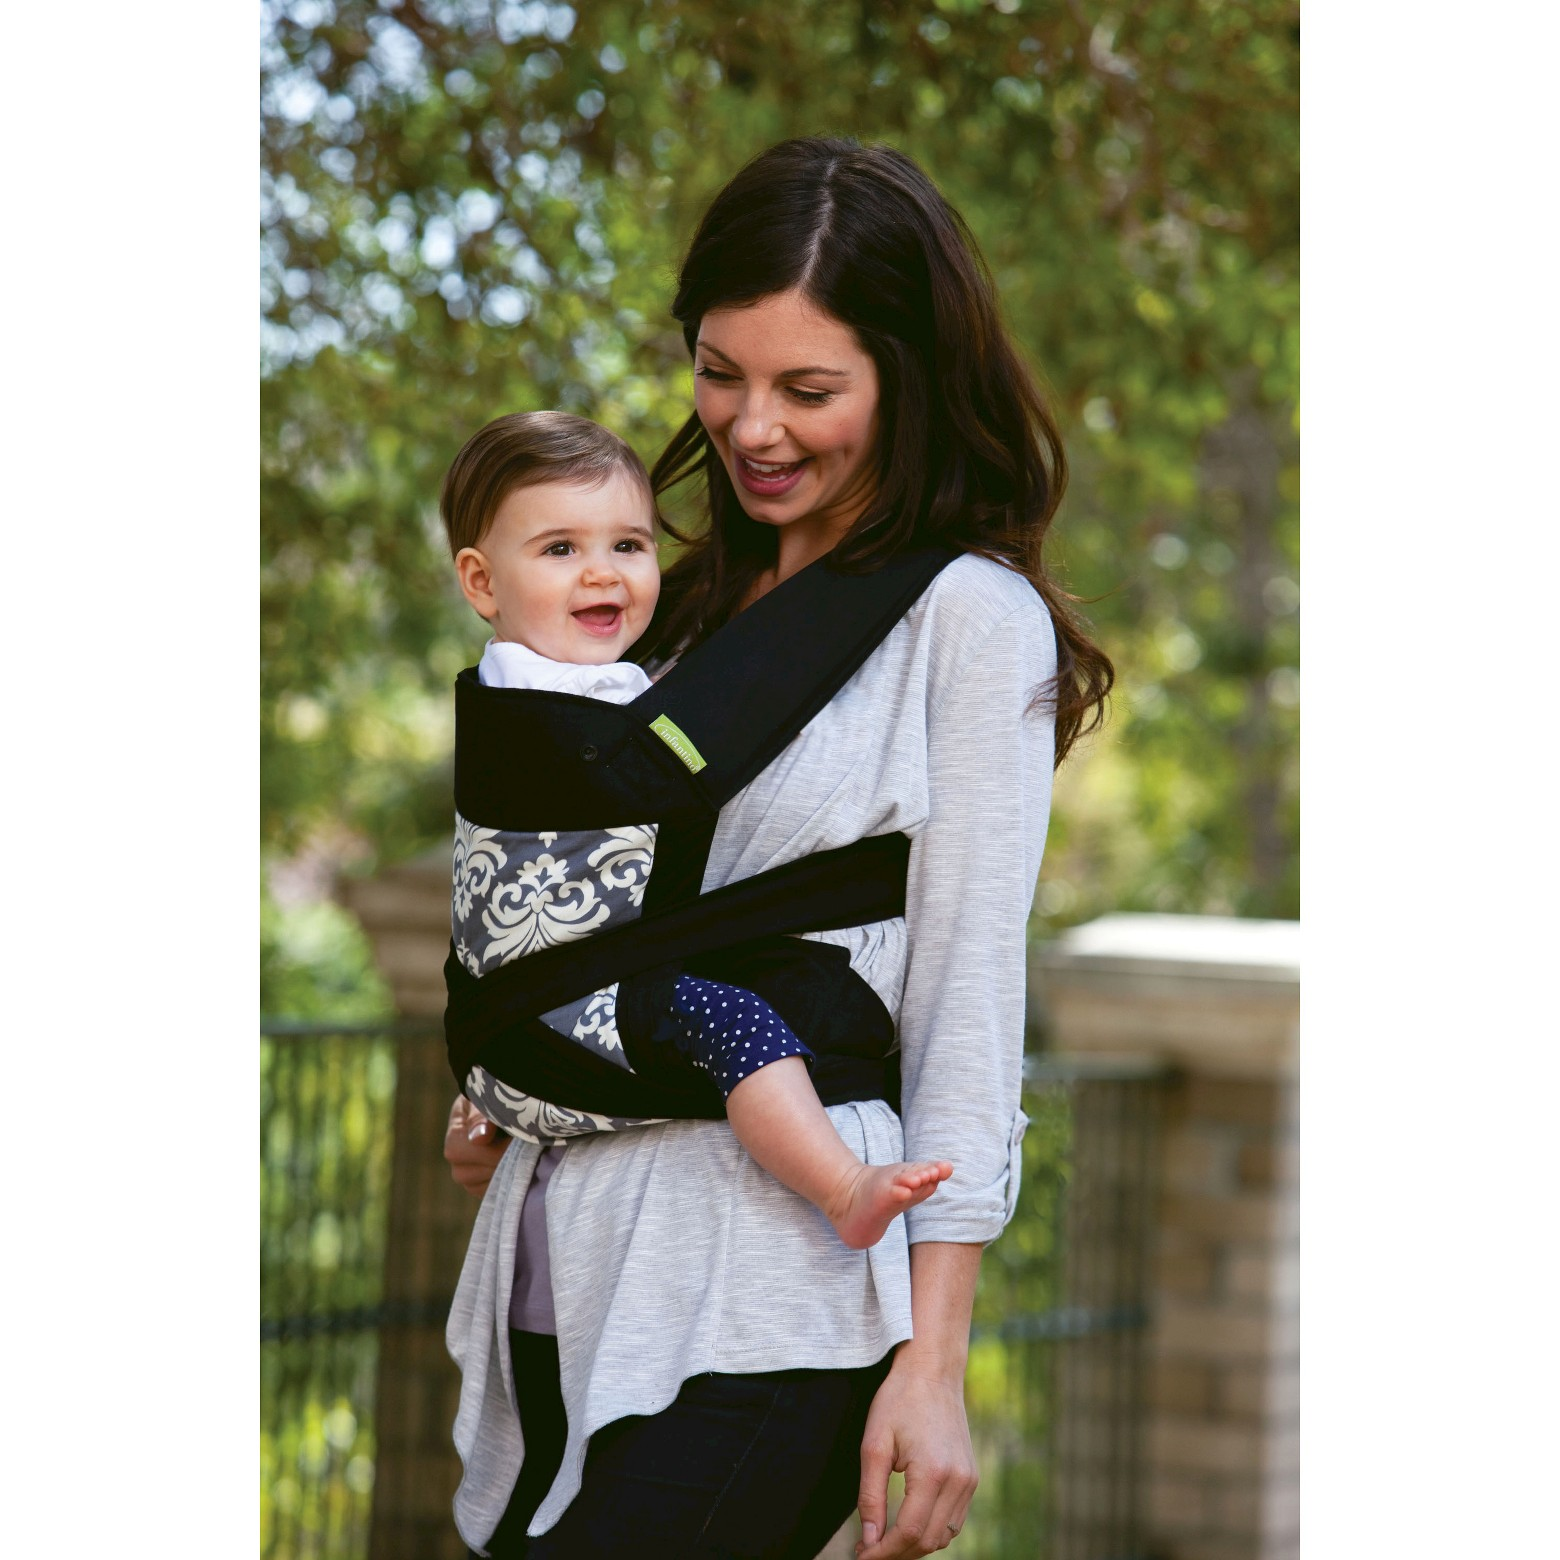 df496fa5d55 The 2018 Guide for Buying Baby Carriers and Slings